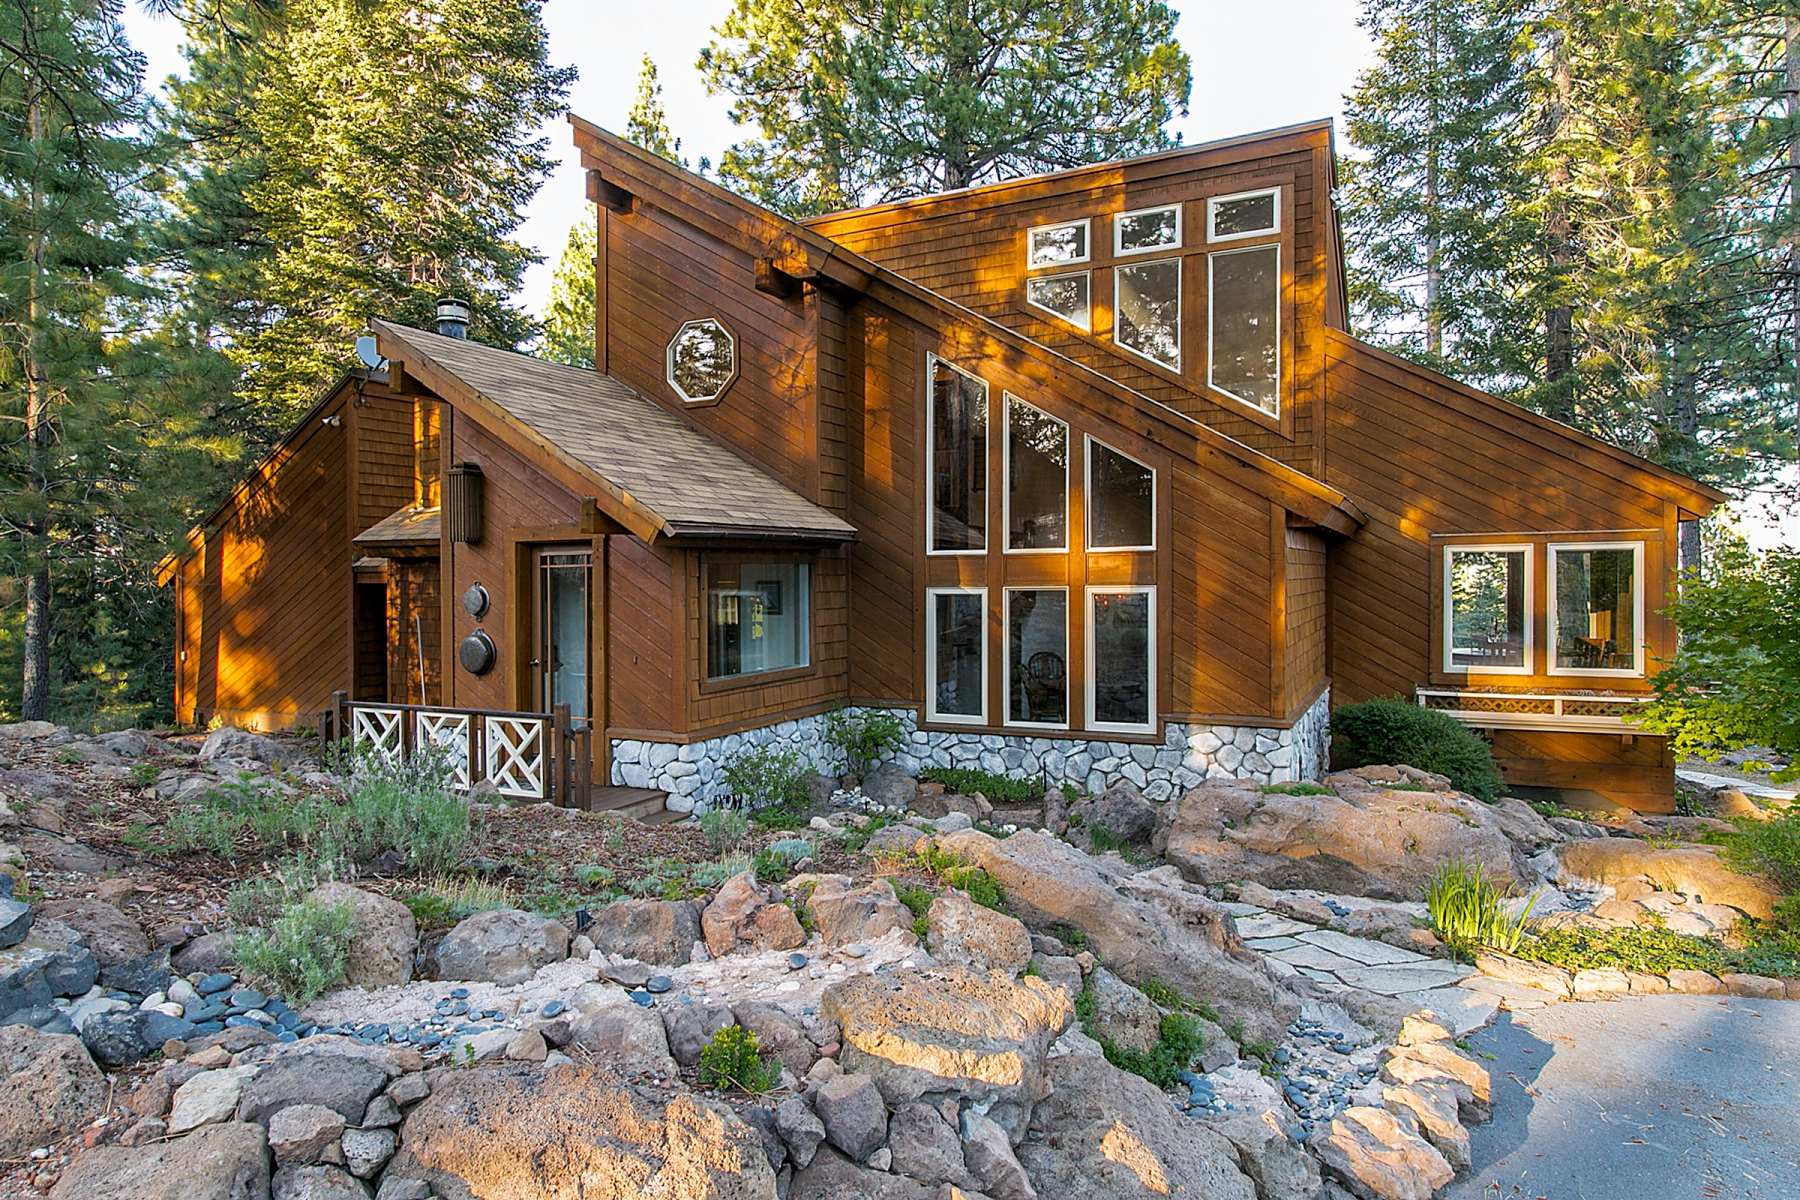 Single Family Home for Sale at 10601 Palisades Drive Sierra Meadows, Truckee, California 96161 United States